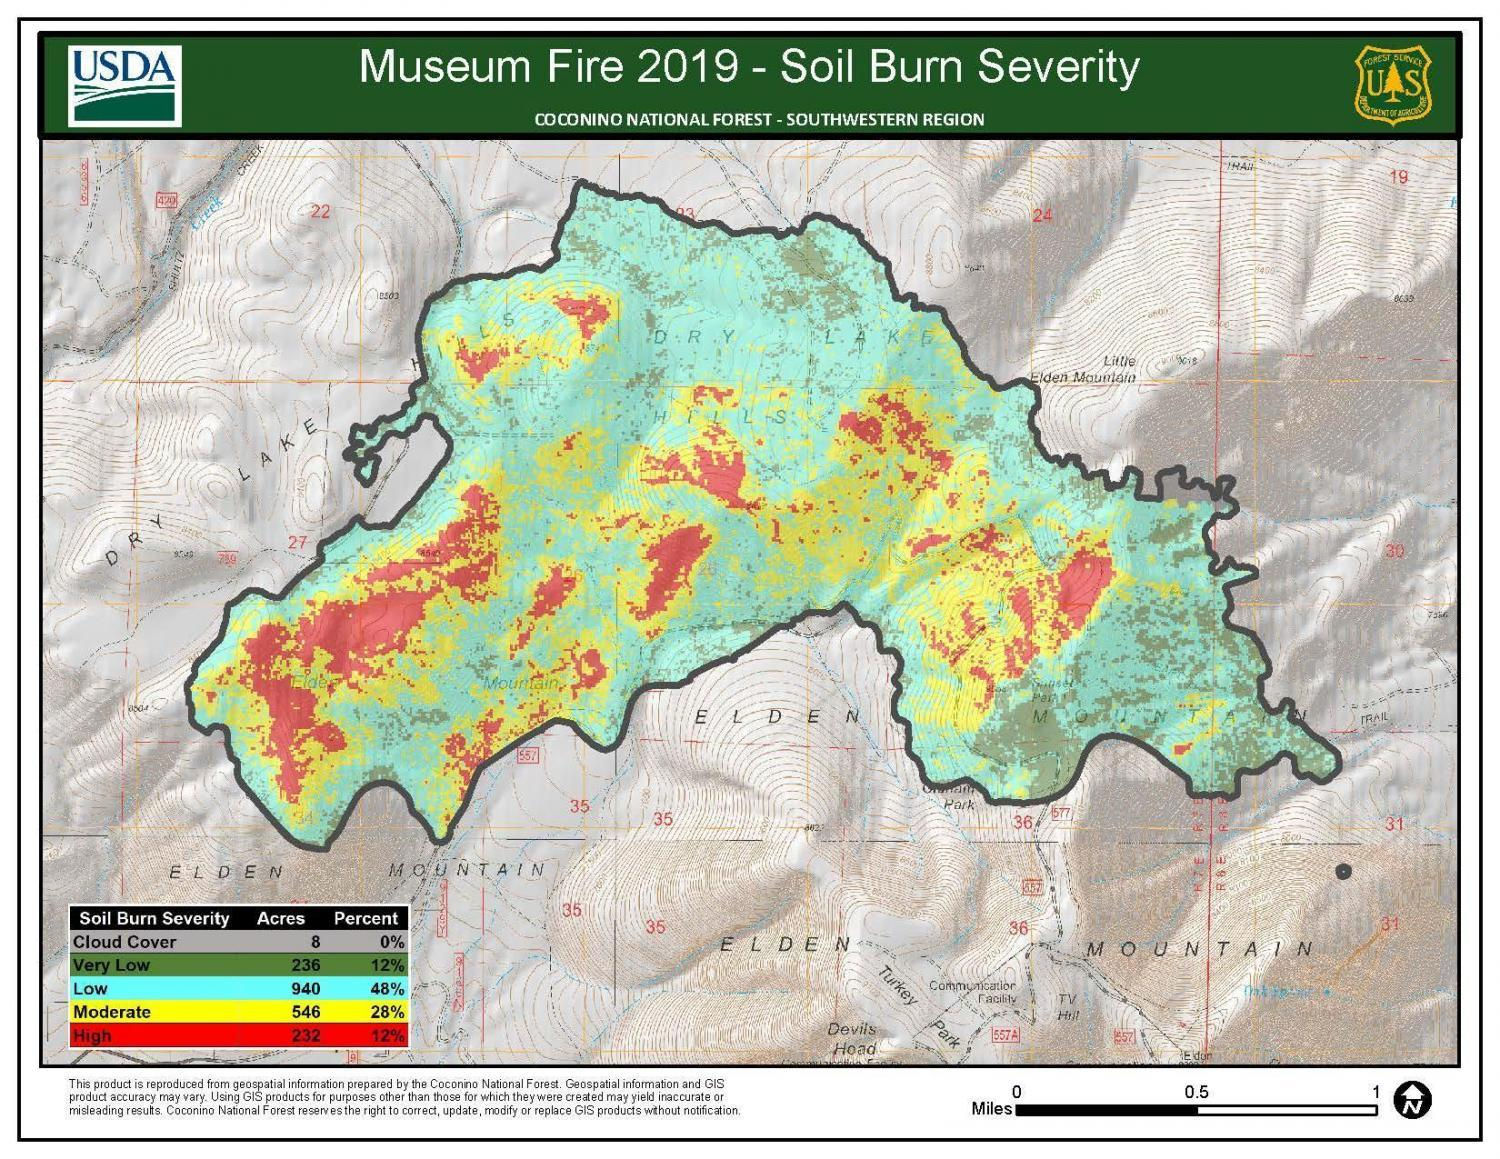 A map of soil burn severity from the Museum Fire.